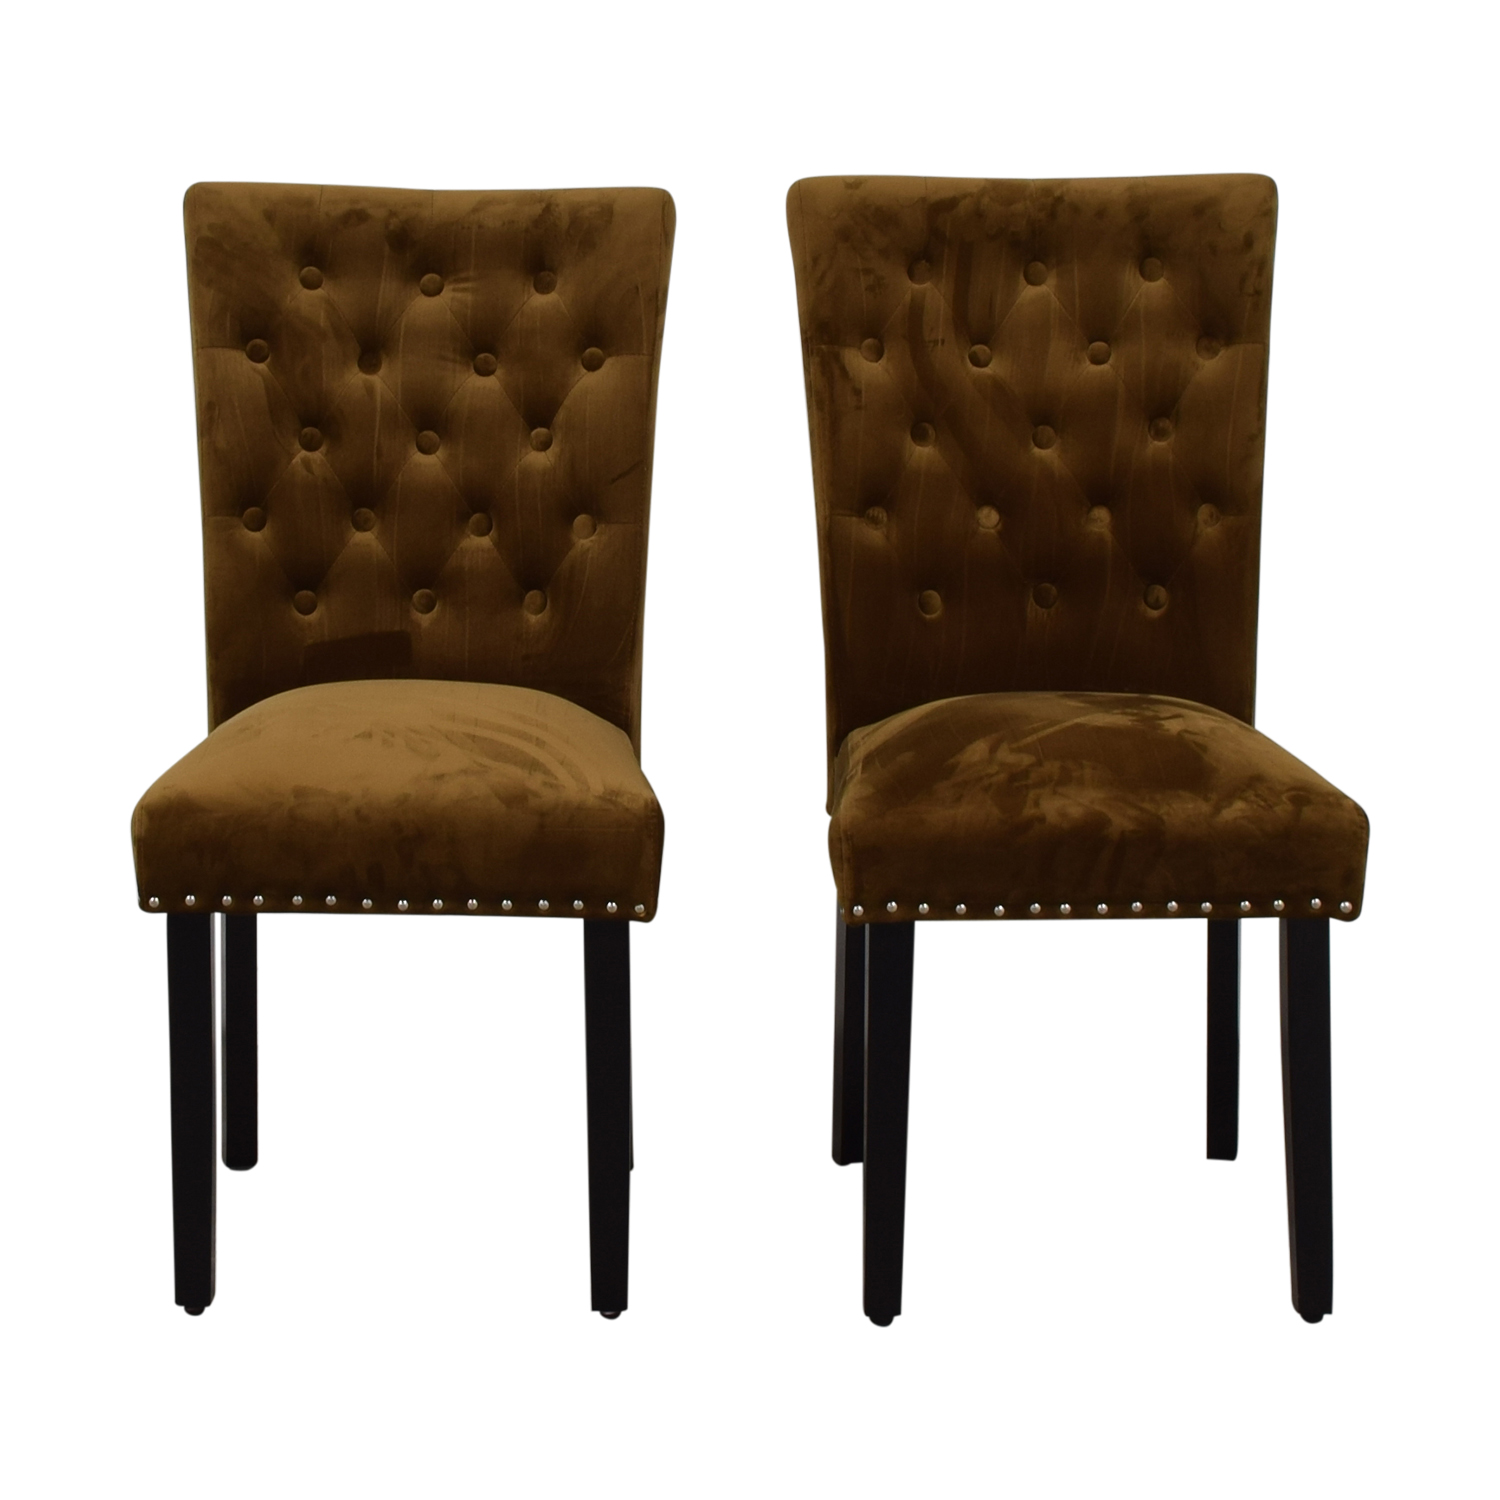 Copper Dining Chairs 88 Off House Of Hampton House Of Hampton Tufted Copper Brown Dining Chairs Chairs